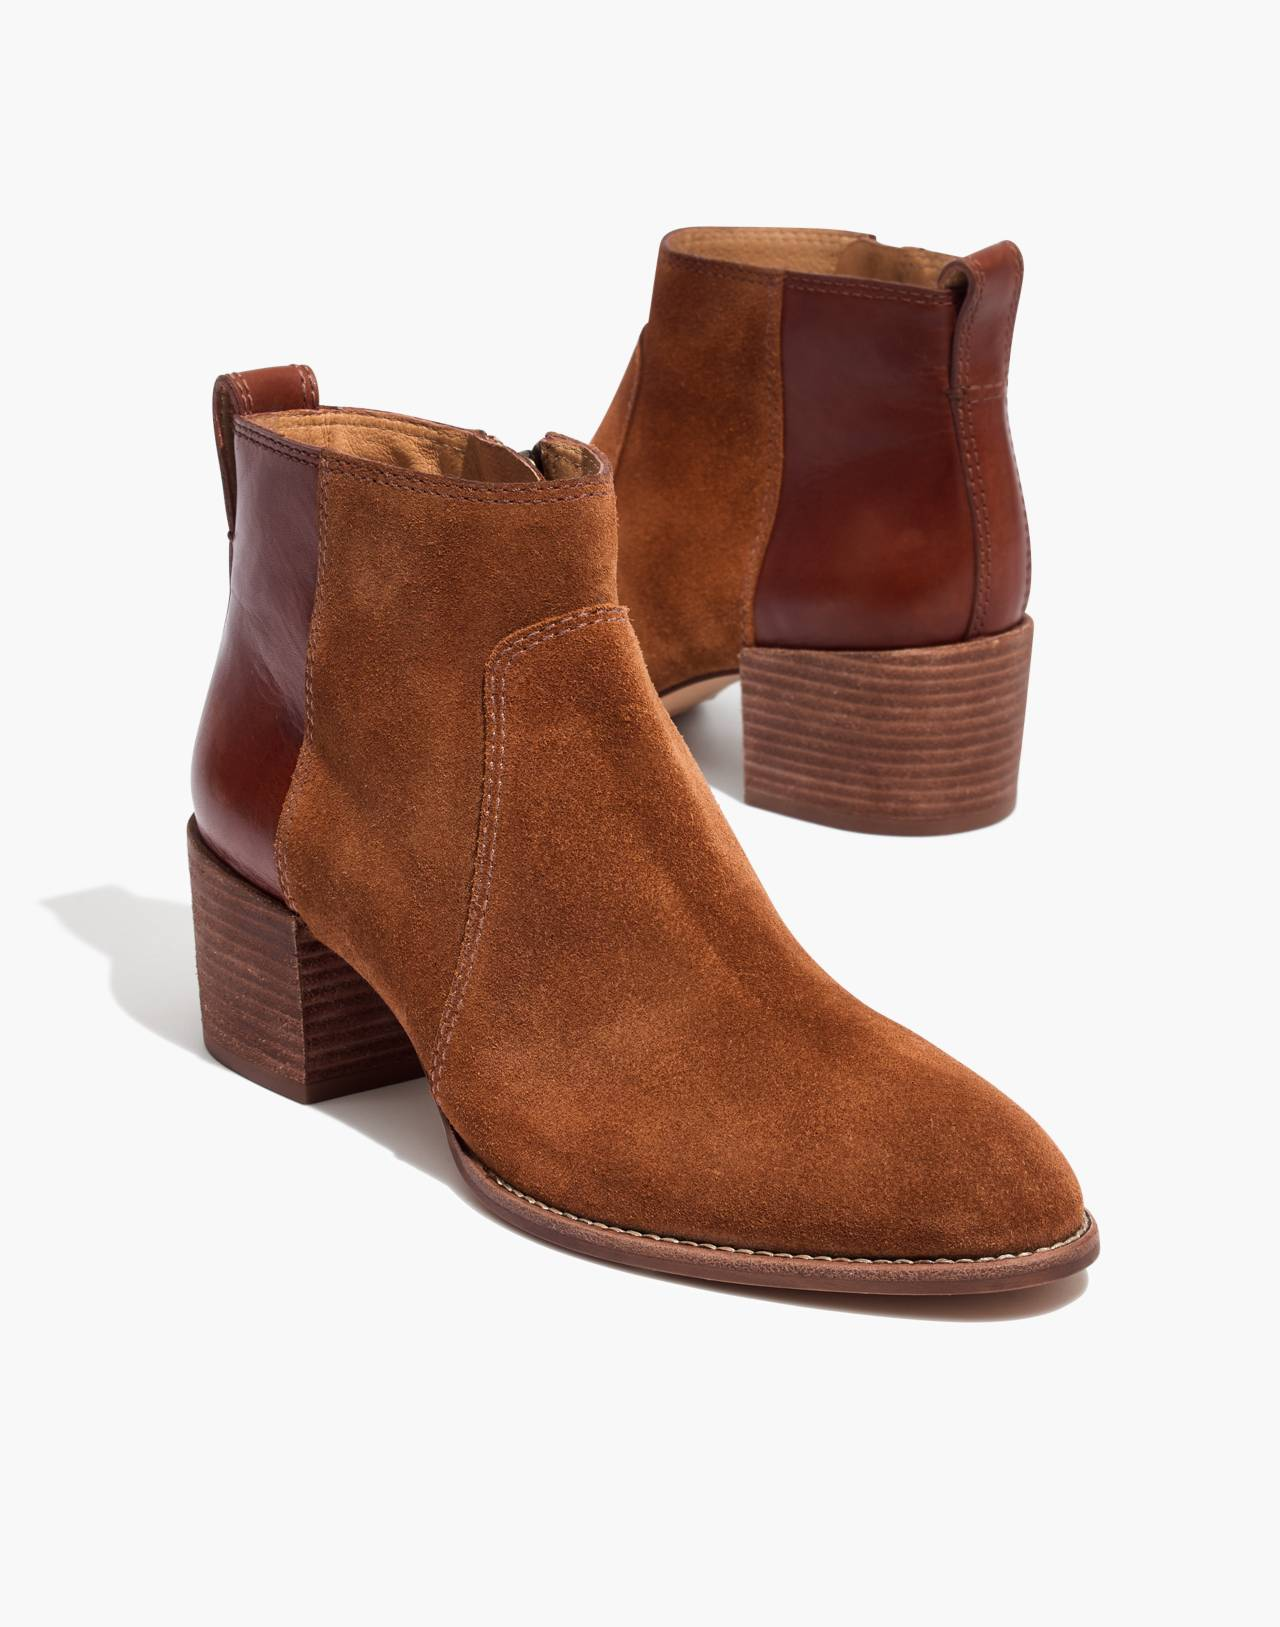 The Asher Boot in Suede and Leather in burnt sienna image 1